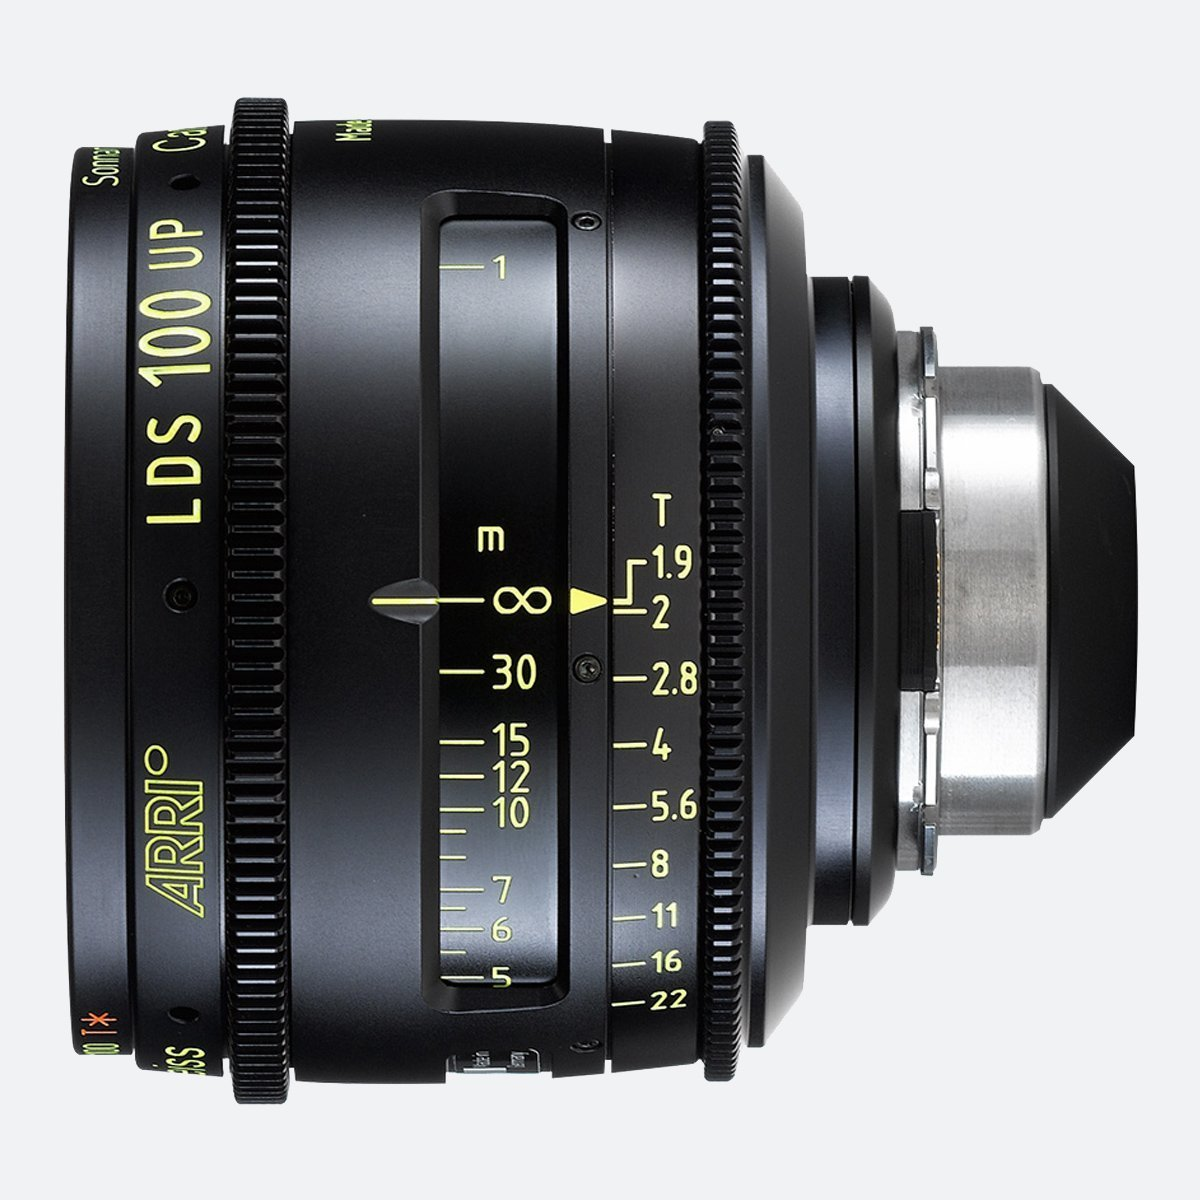 ARRI 100mm T1.9 LDS Ultra Prime Lens